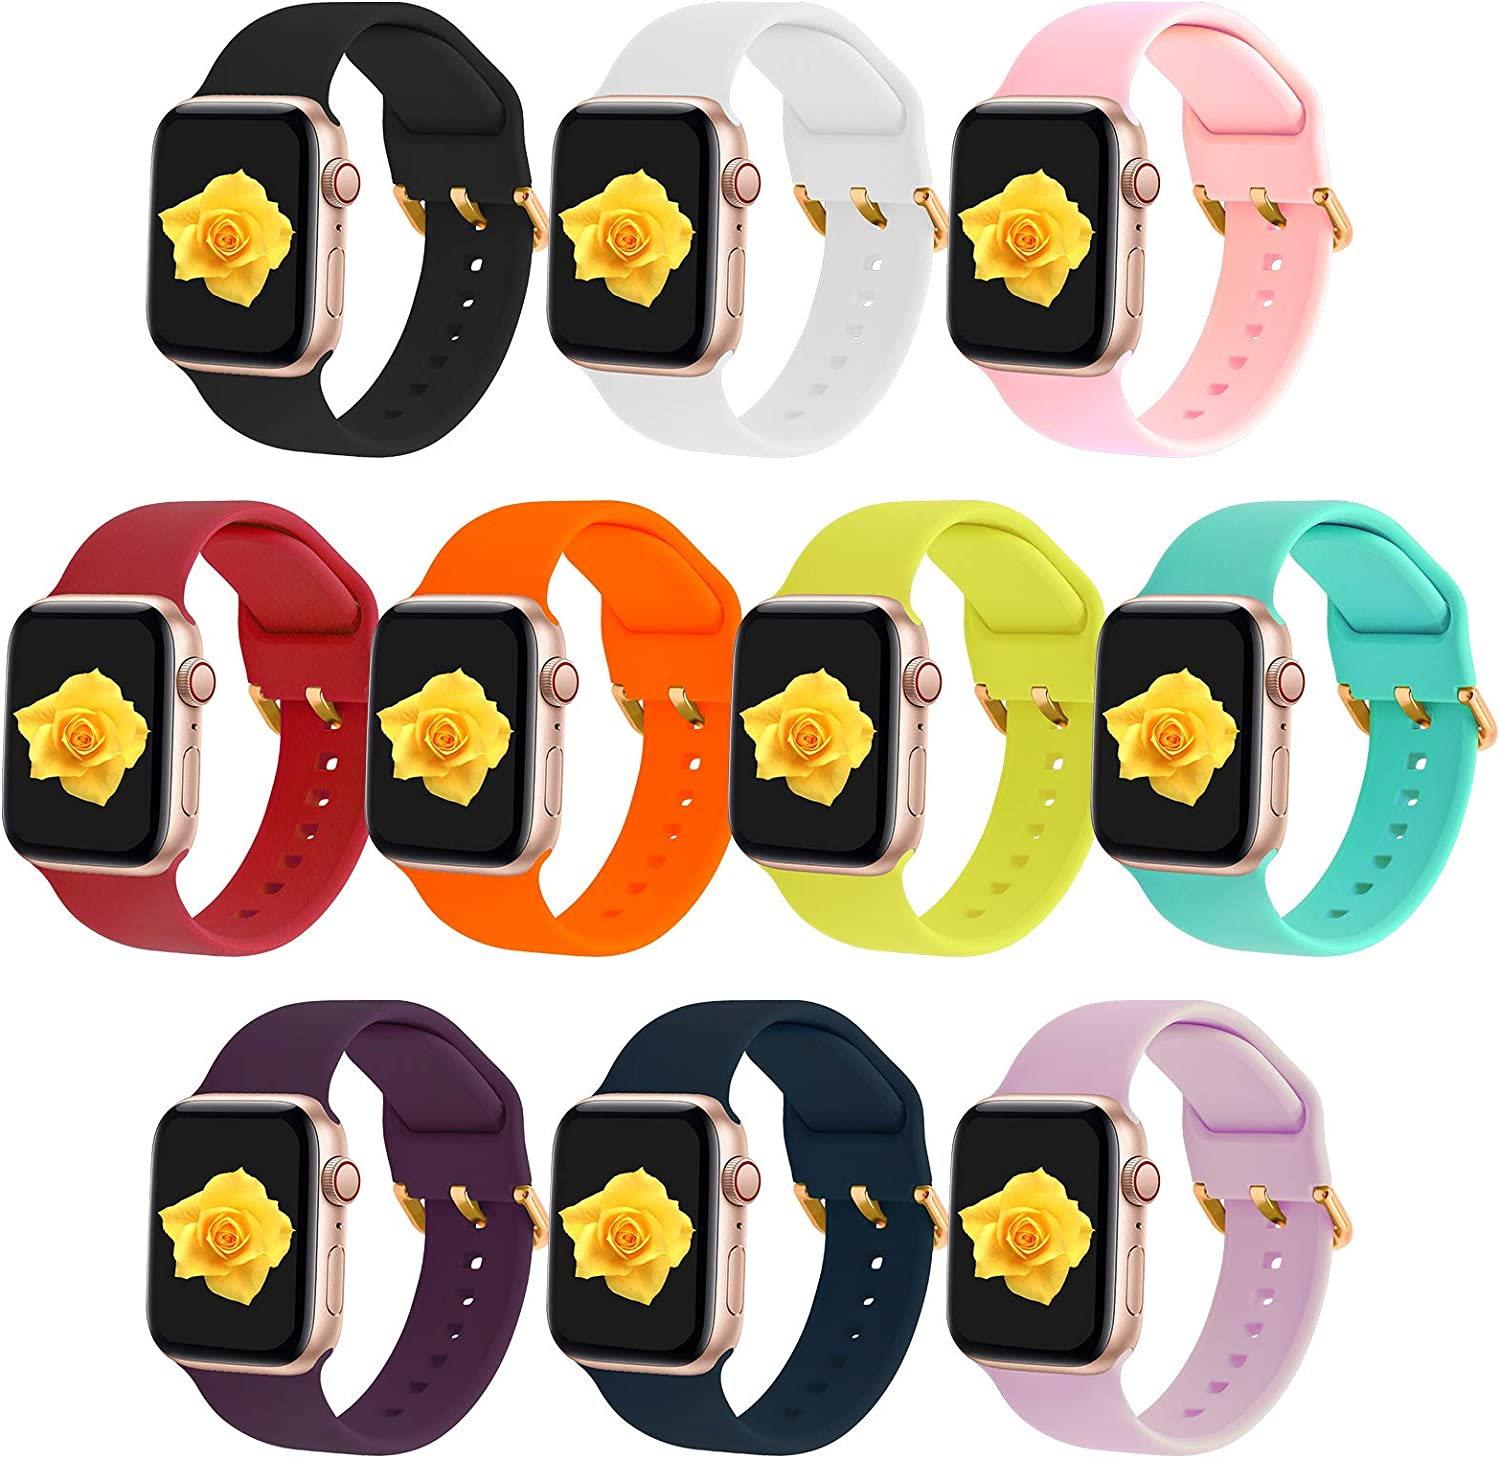 XVGJDZ 10-Pack Replacement Wristband Compatible with Apple Watch 38mm 40mm 42mm 44mm,Soft Silicone Watch Strap Durable Sport Bands for iWatch SE/Series 6/5/4/3/2/1.